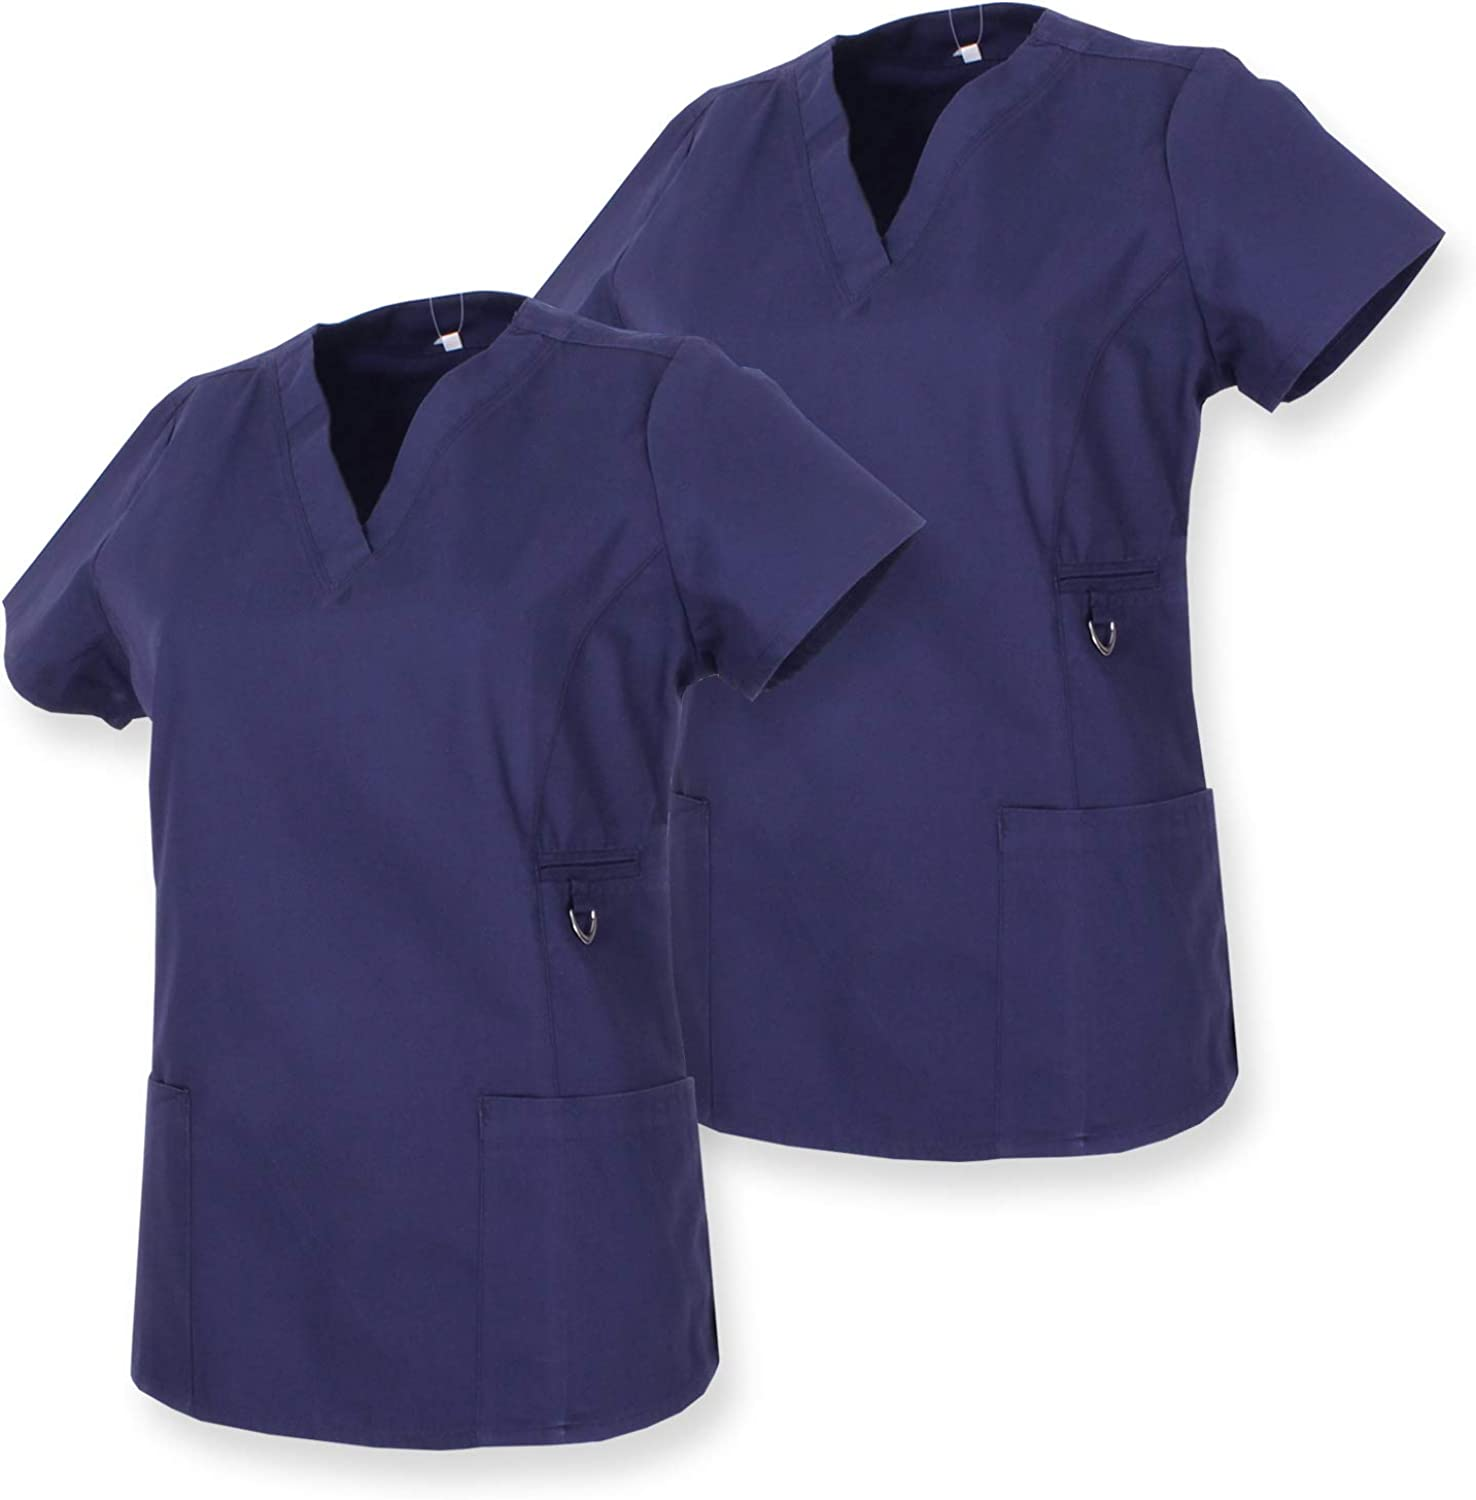 Work Clothes Lady Short Sleeves Uniform Medical Uniforms Scrub Top Ref.707 Set of 2 MISEMIYA